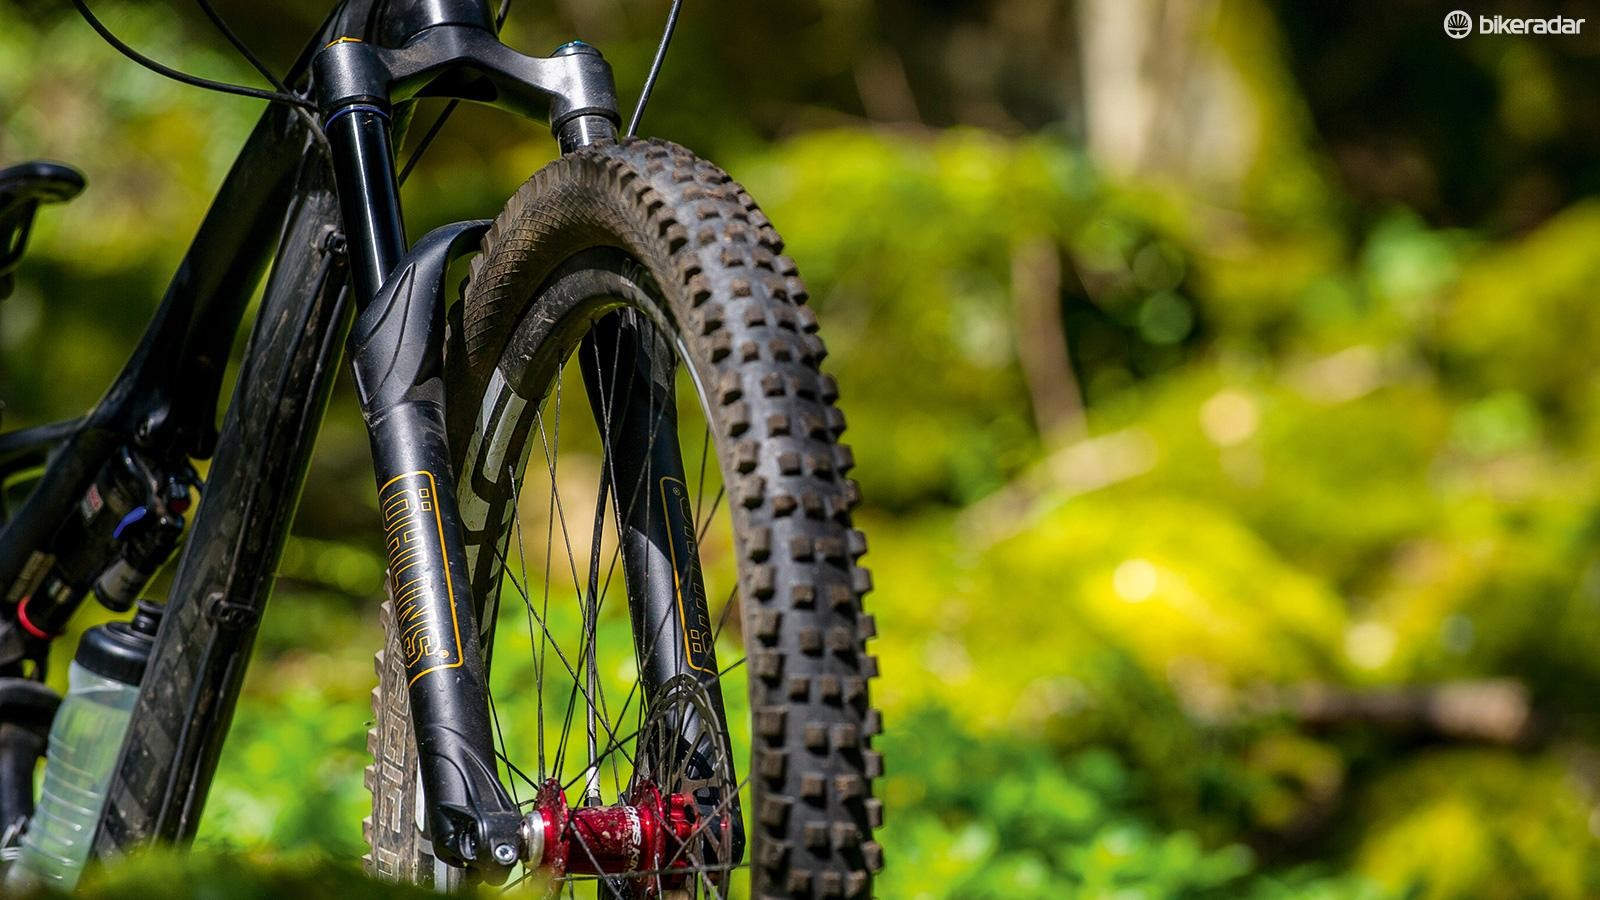 The RXF 34 is Öhlins' first fork that you don't need to buy a Specialized to experience